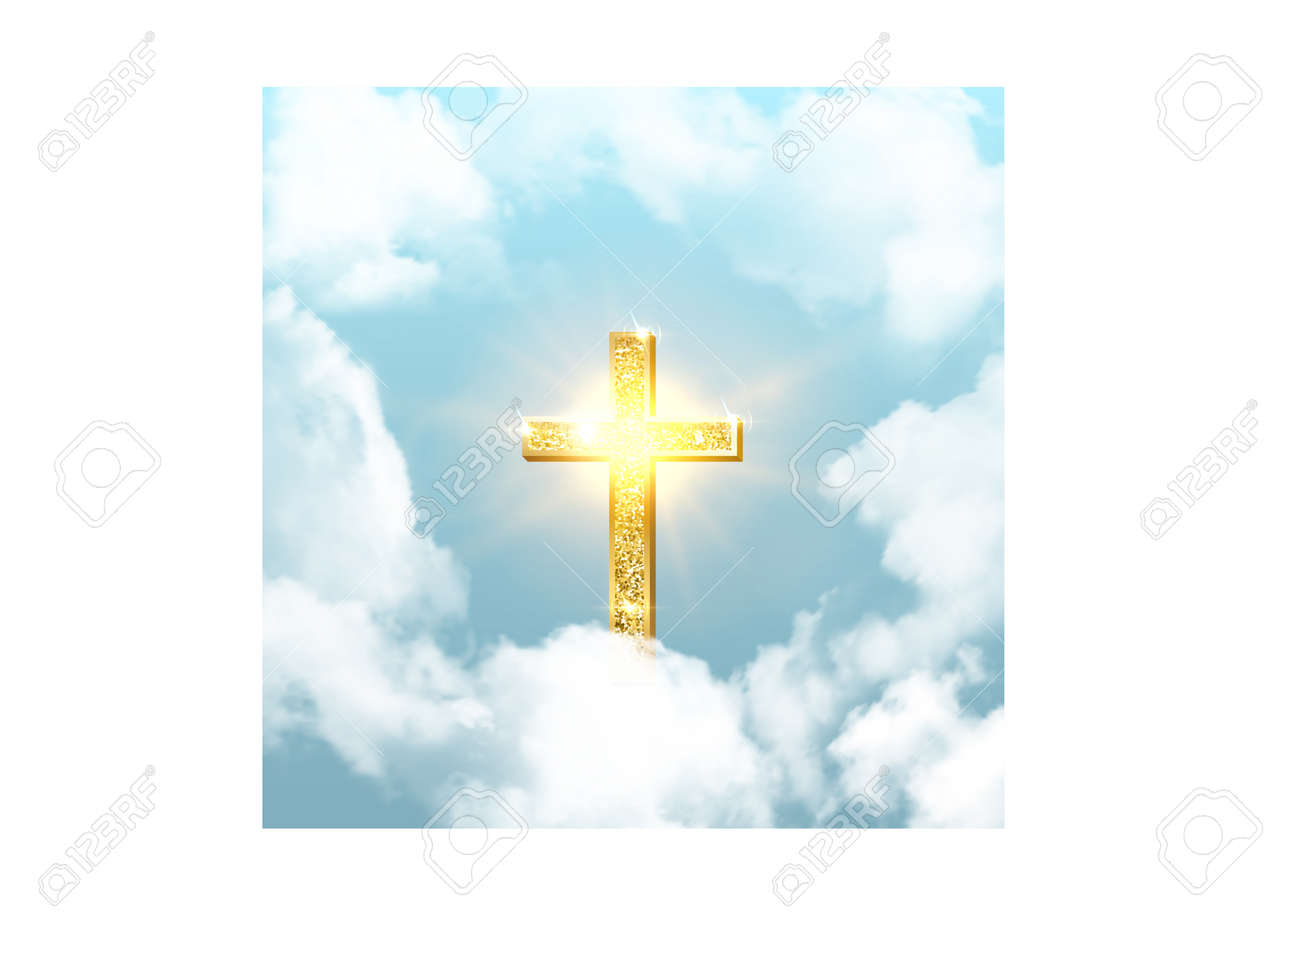 Church cross risen in heaven on Easter background. Christian golden crucifix symbol in sky with clouds and sunbeams vector illustration. Sun shining, religious holiday celebration - 166808749